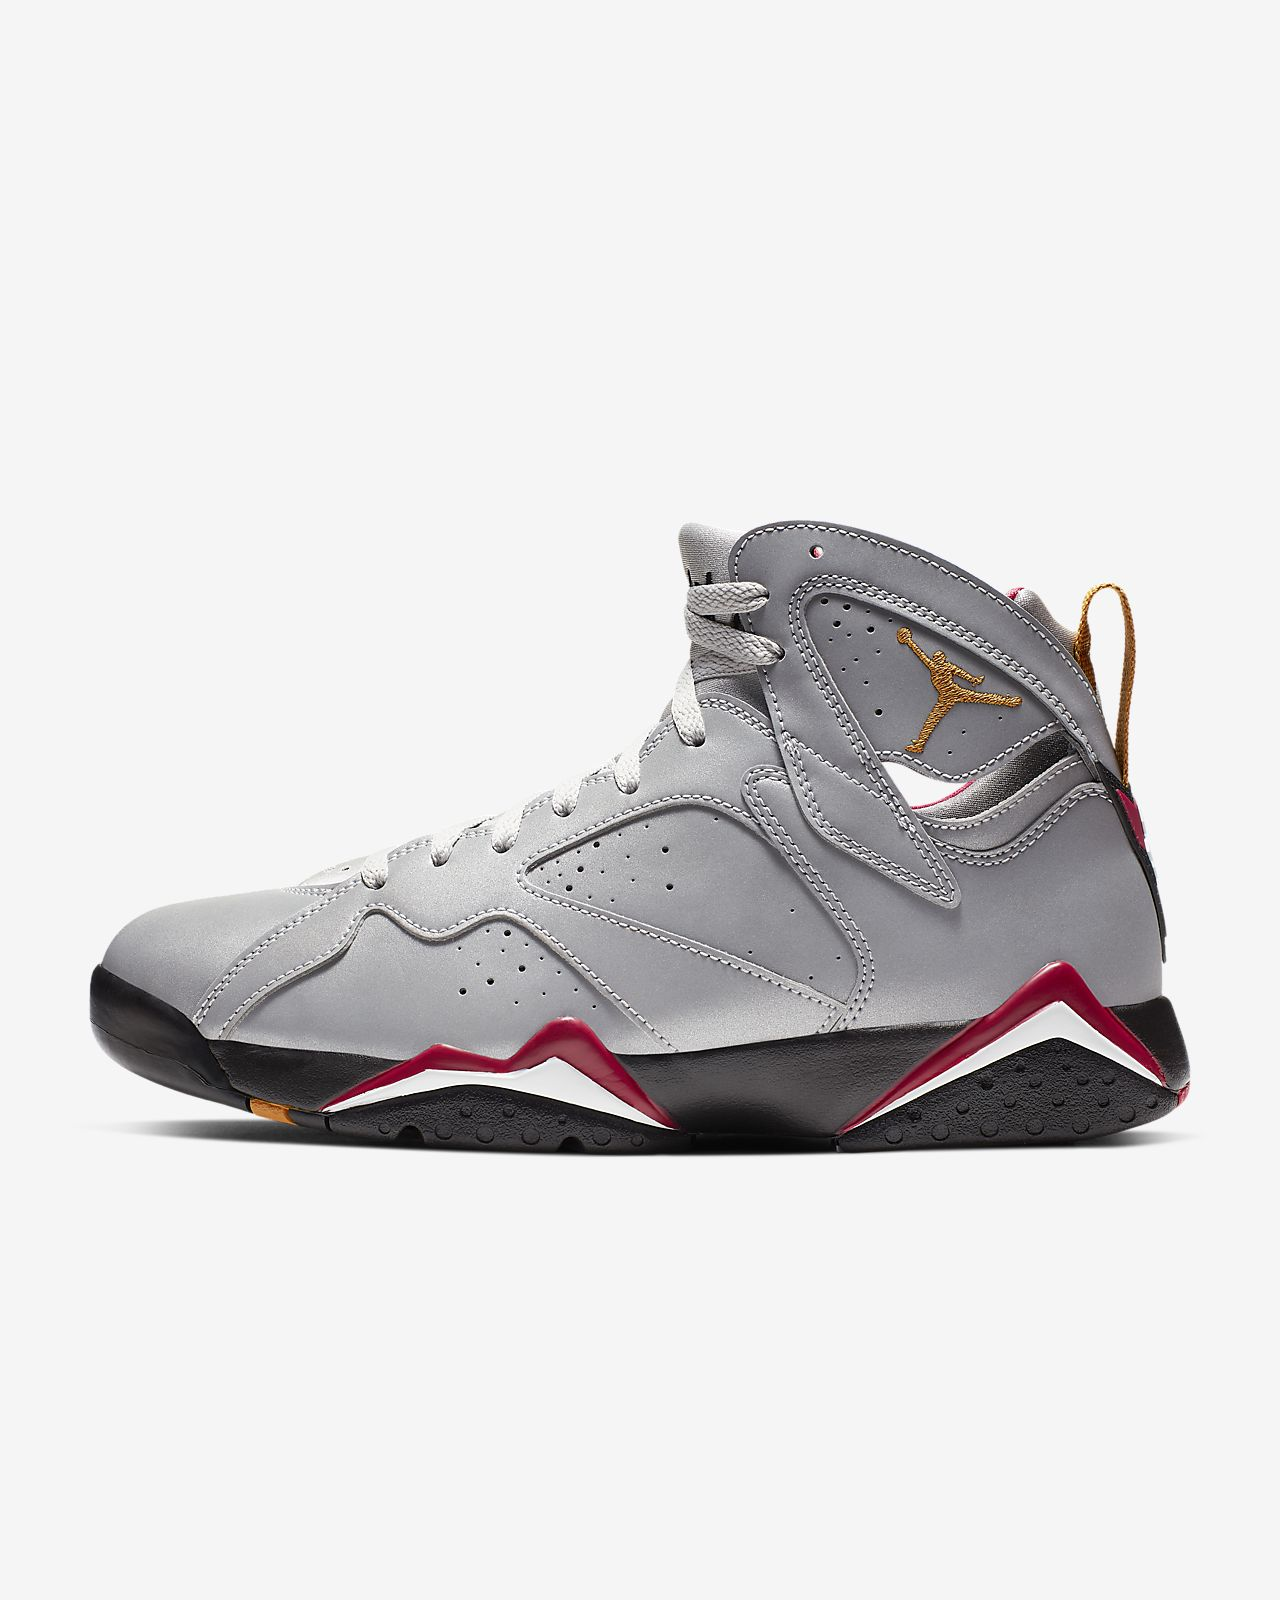 Air Jordan 7 Retro SP Men's Shoe